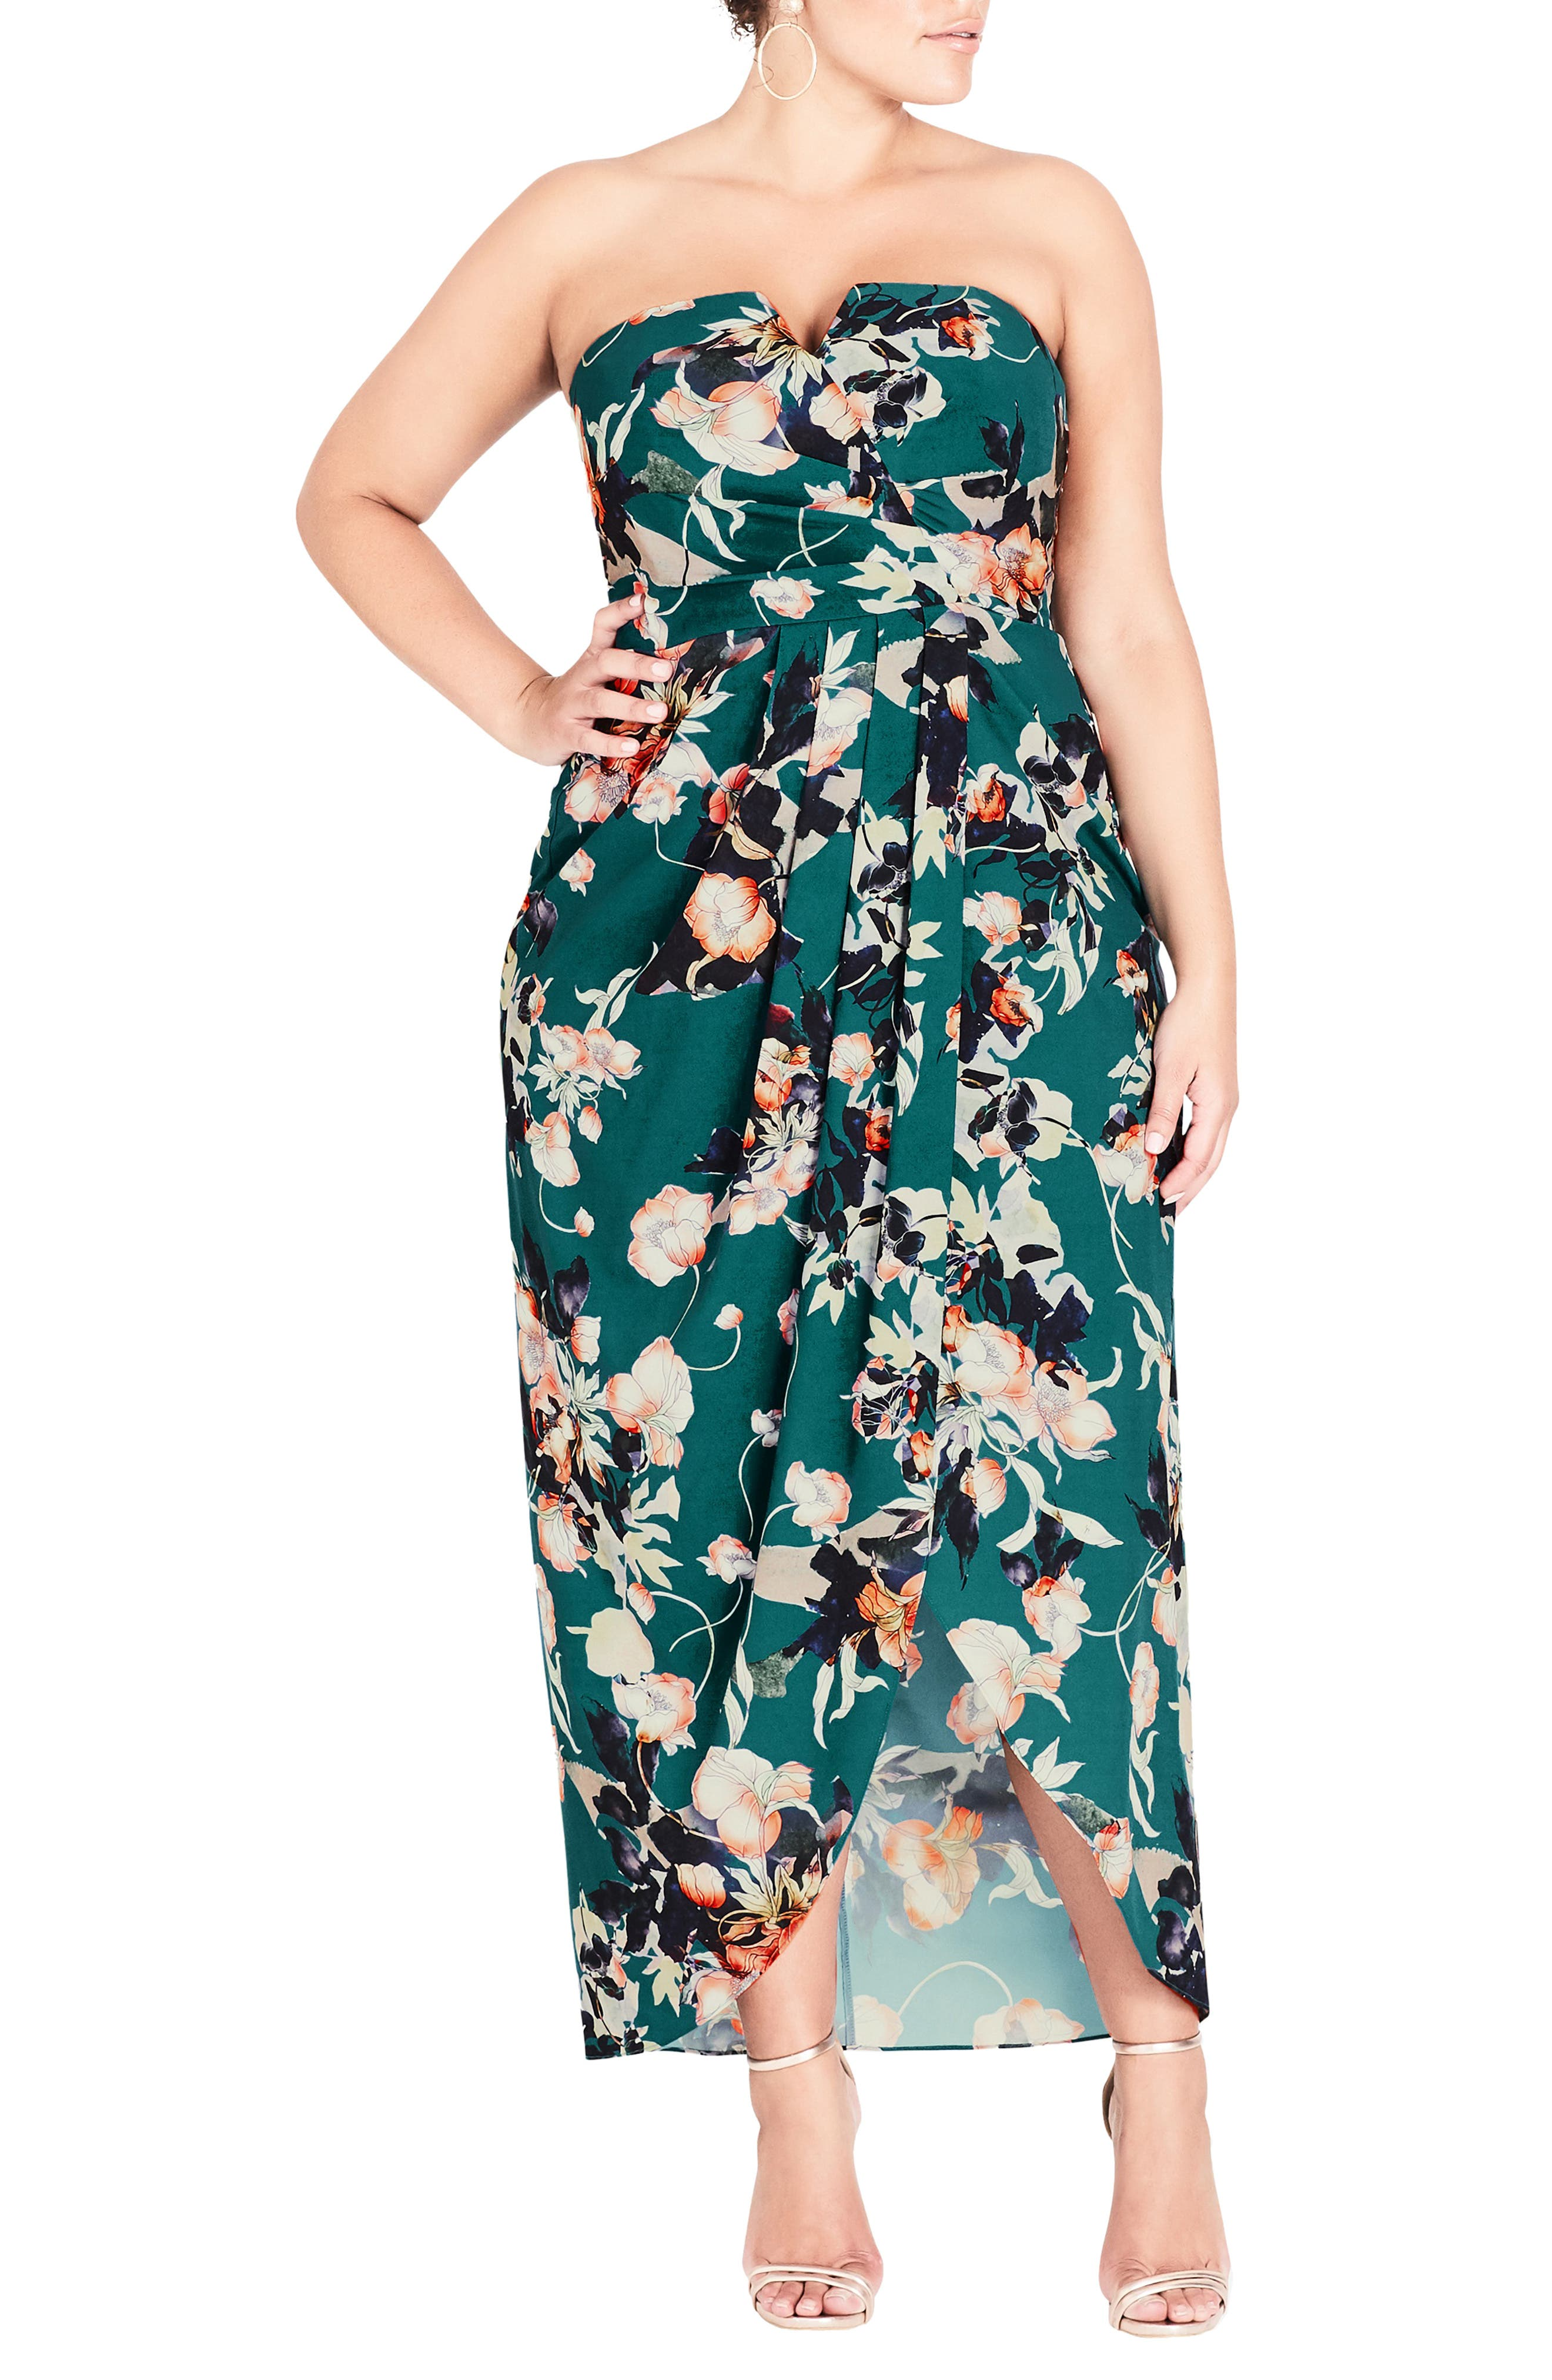 CITY CHIC Emerald Bloom Strapless Maxi Dress, Main, color, 302